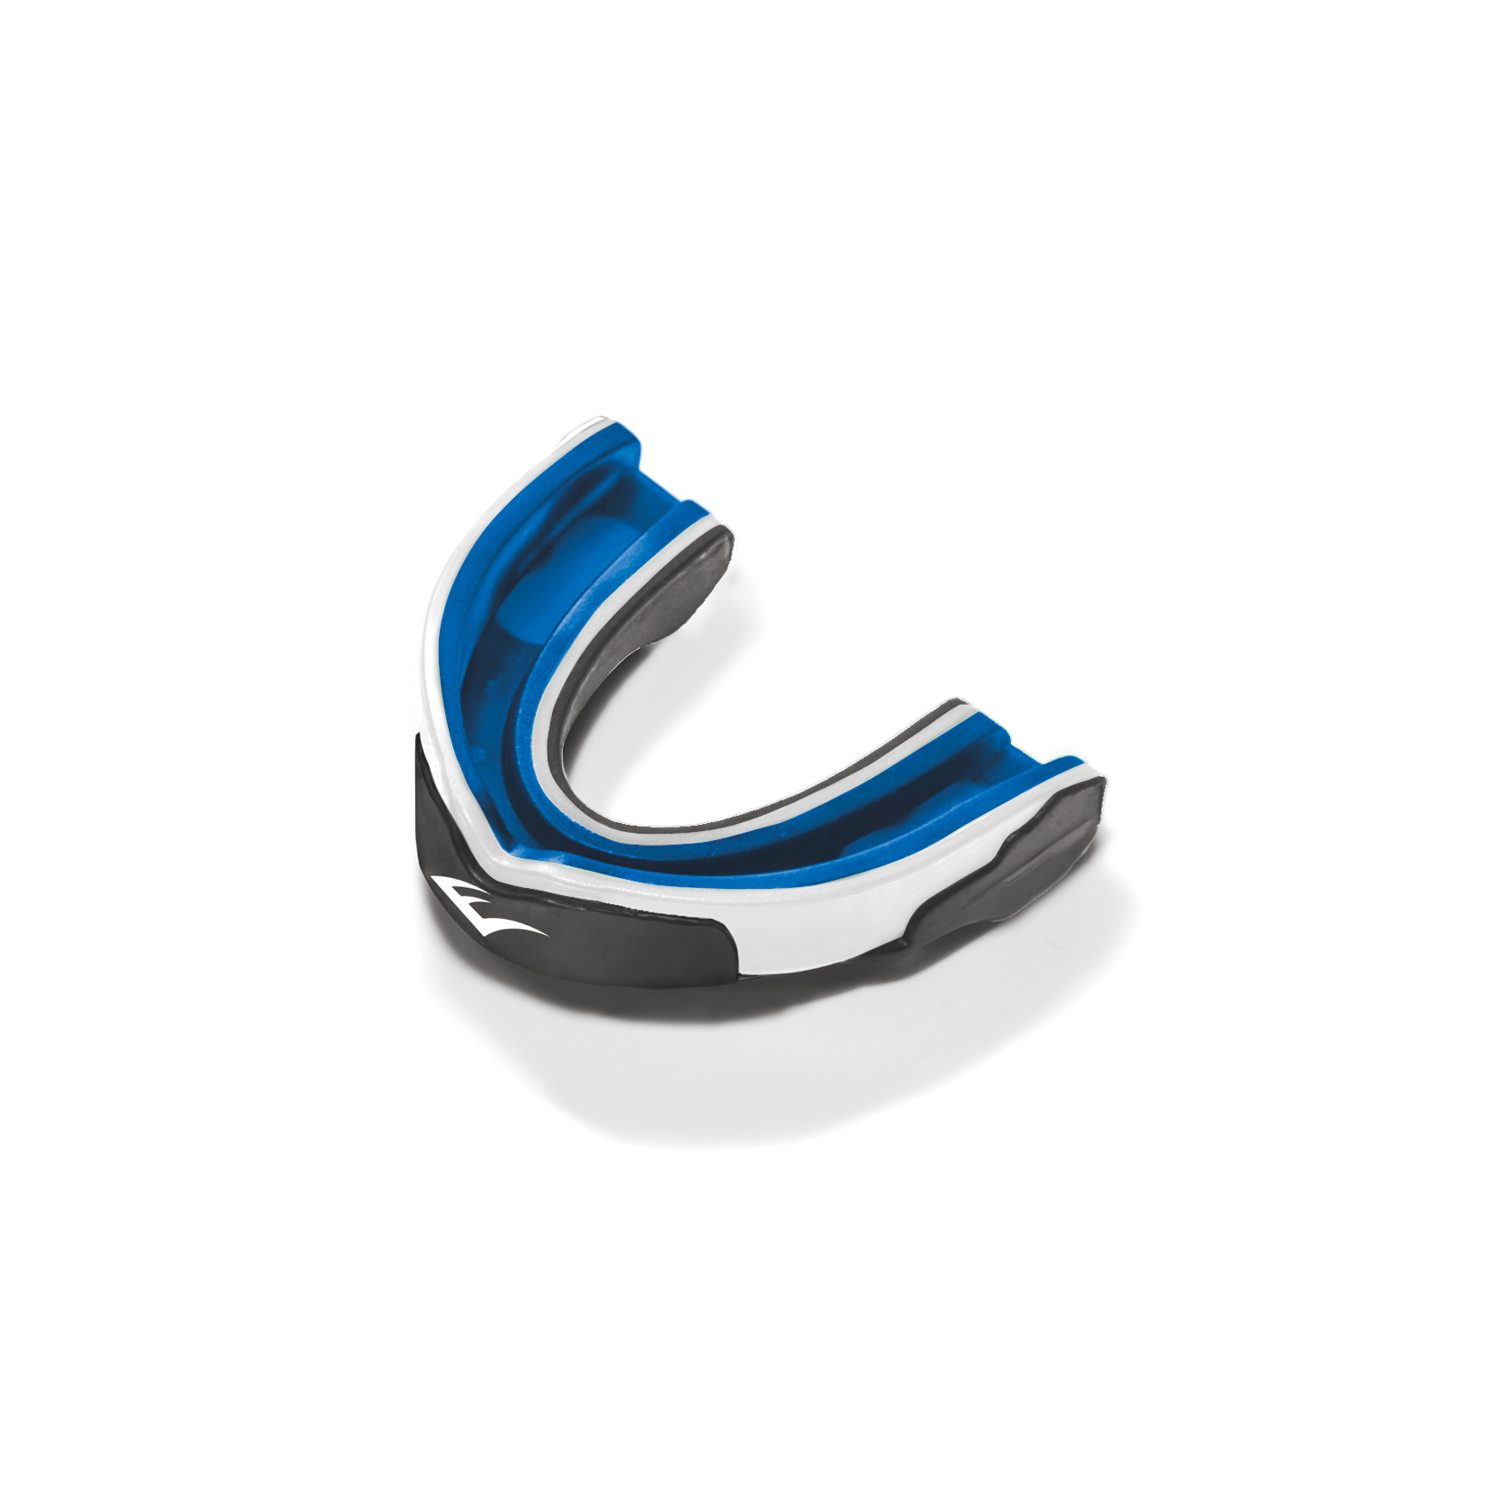 Everlast Evergel Single Mouthguard Blue/Black